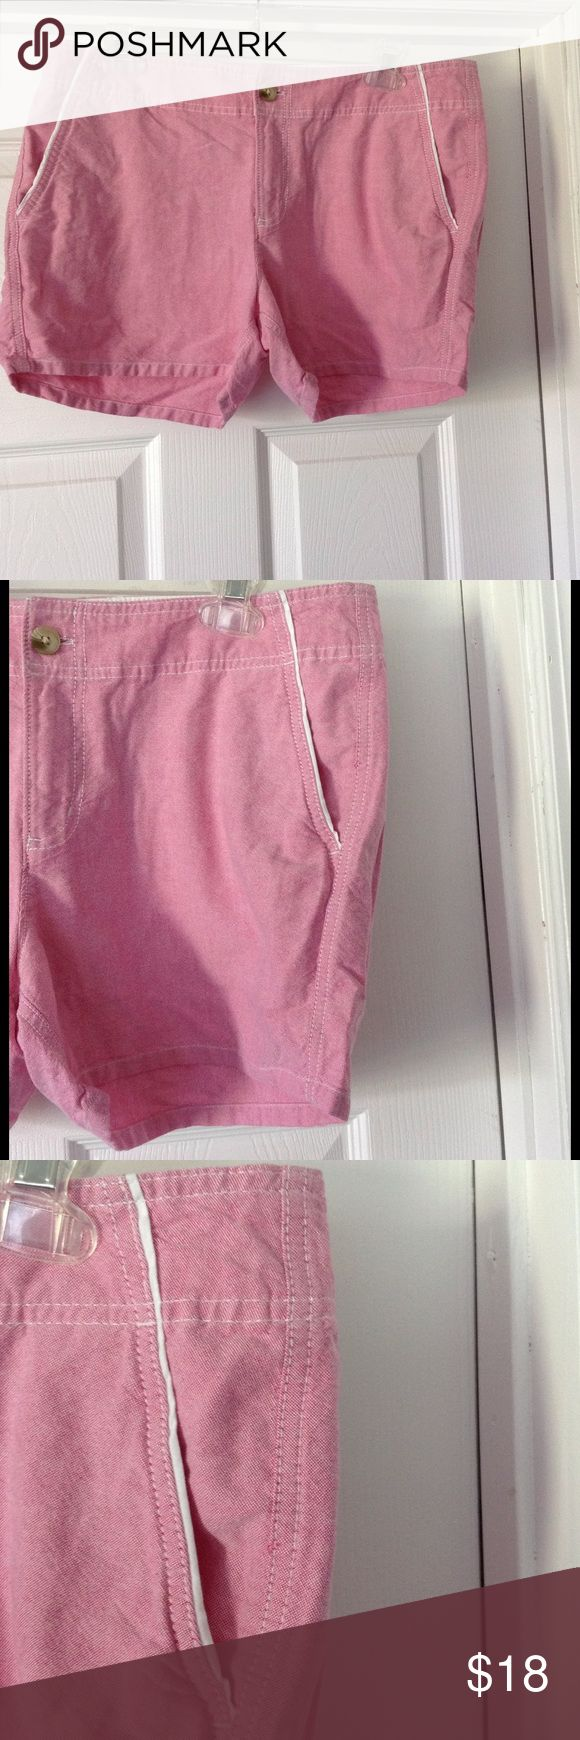 """Columbia PFG shorts women's  Solar fade pink sz 12 Columbia sportswear company shorts. Size 12. Inseam 4"""". Solar pink color.Performance fishing gear. Pockets in front and back. Good preowned condition. Columbia Shorts Jean Shorts"""